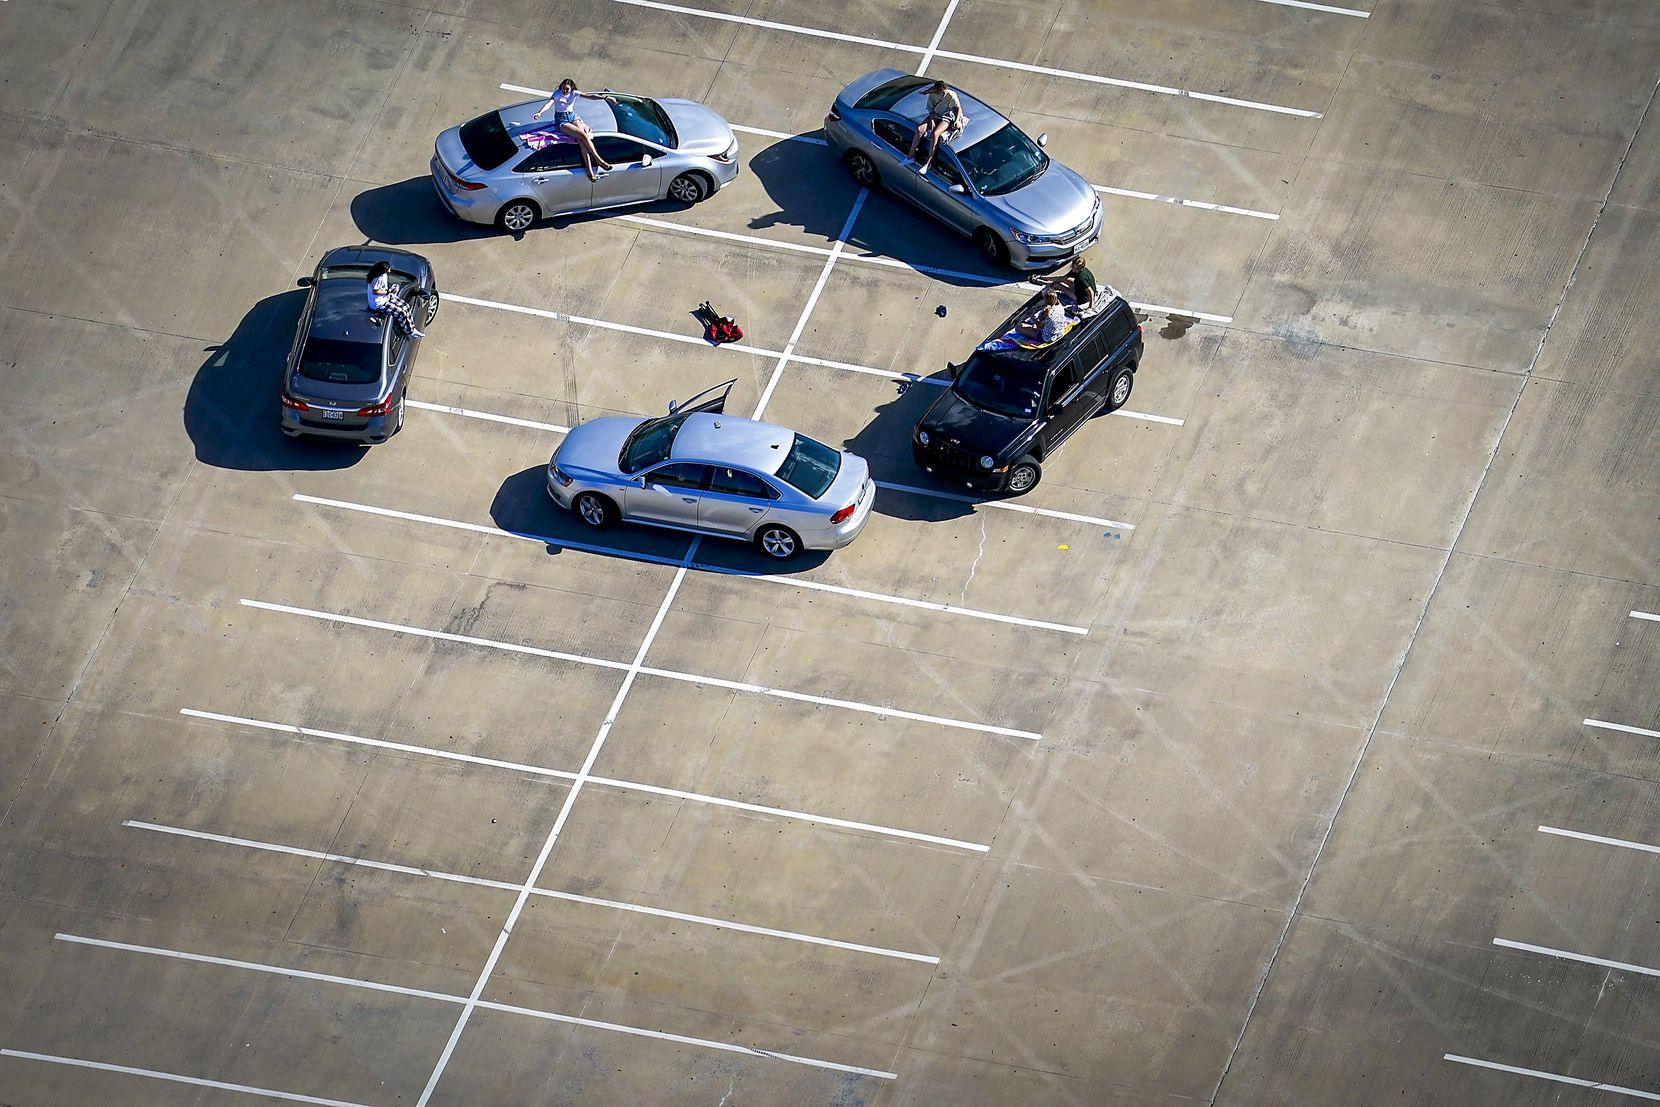 Young people gathered in the parking lot of McKinney High School on March 24, 2020. After Dallas County's shelter-in-place order went into effect at midnight the night before, the Collin County judge announced a similar stay-at-home order.